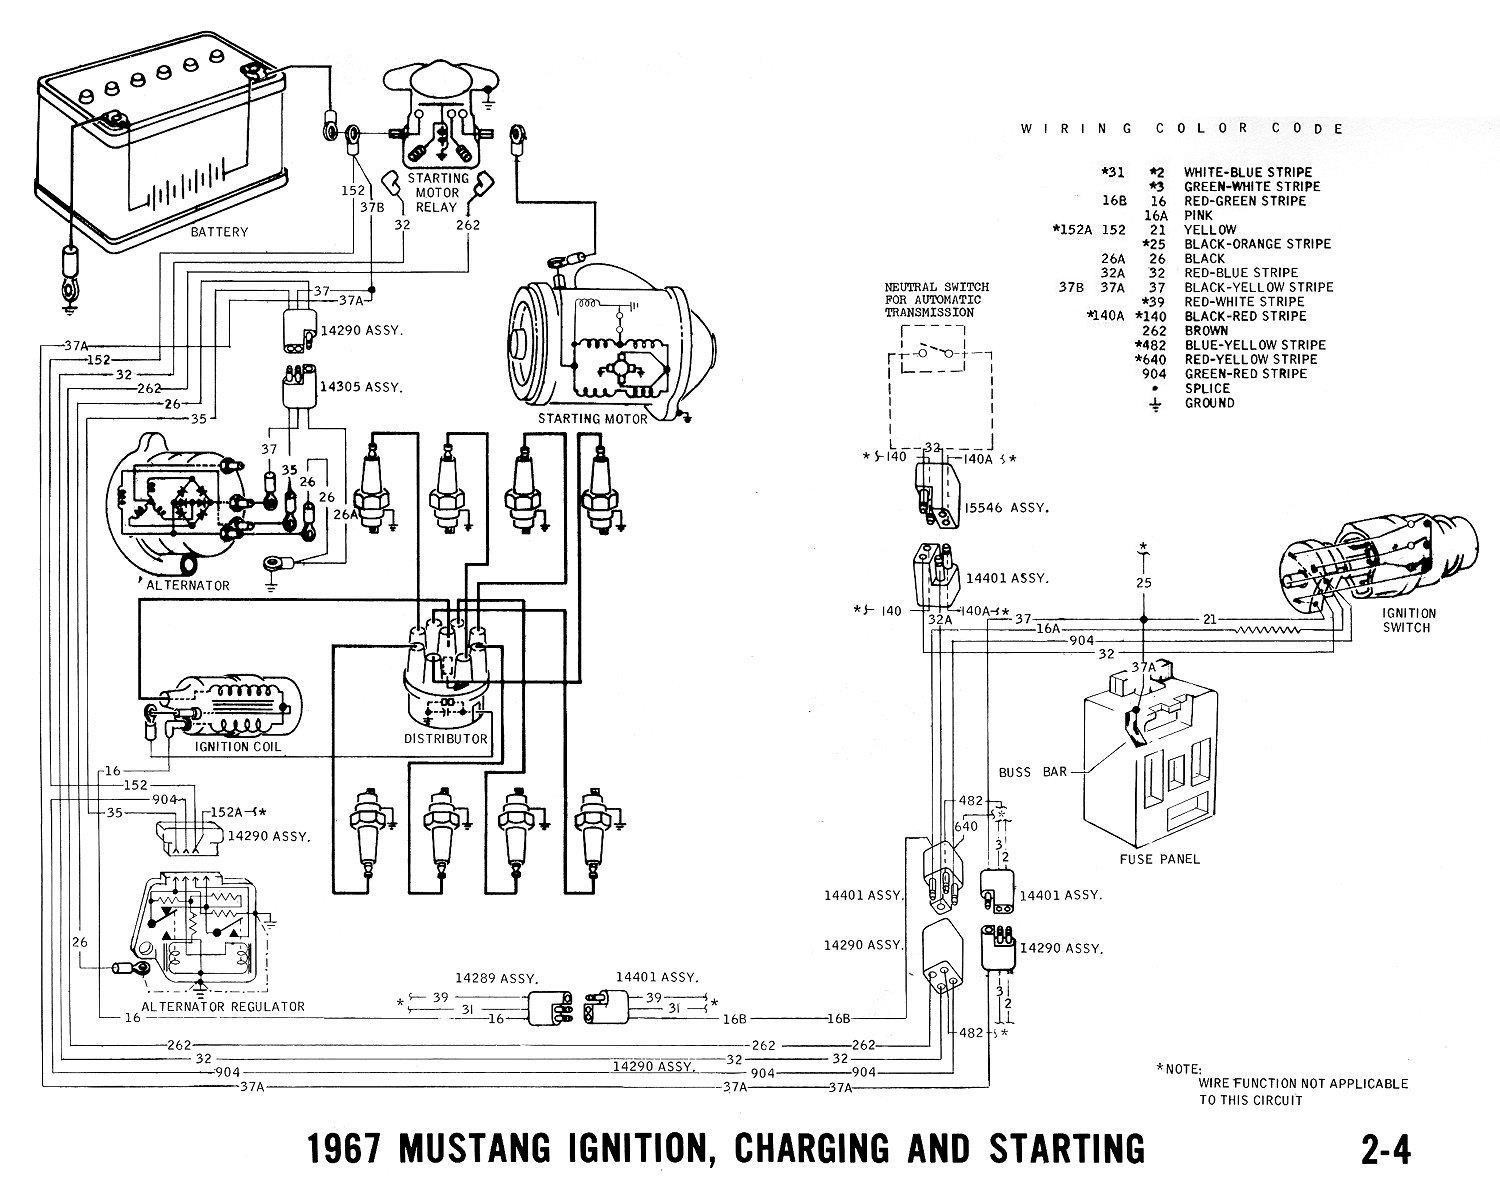 67 lemans alt wire diagram wiring diagram schematics